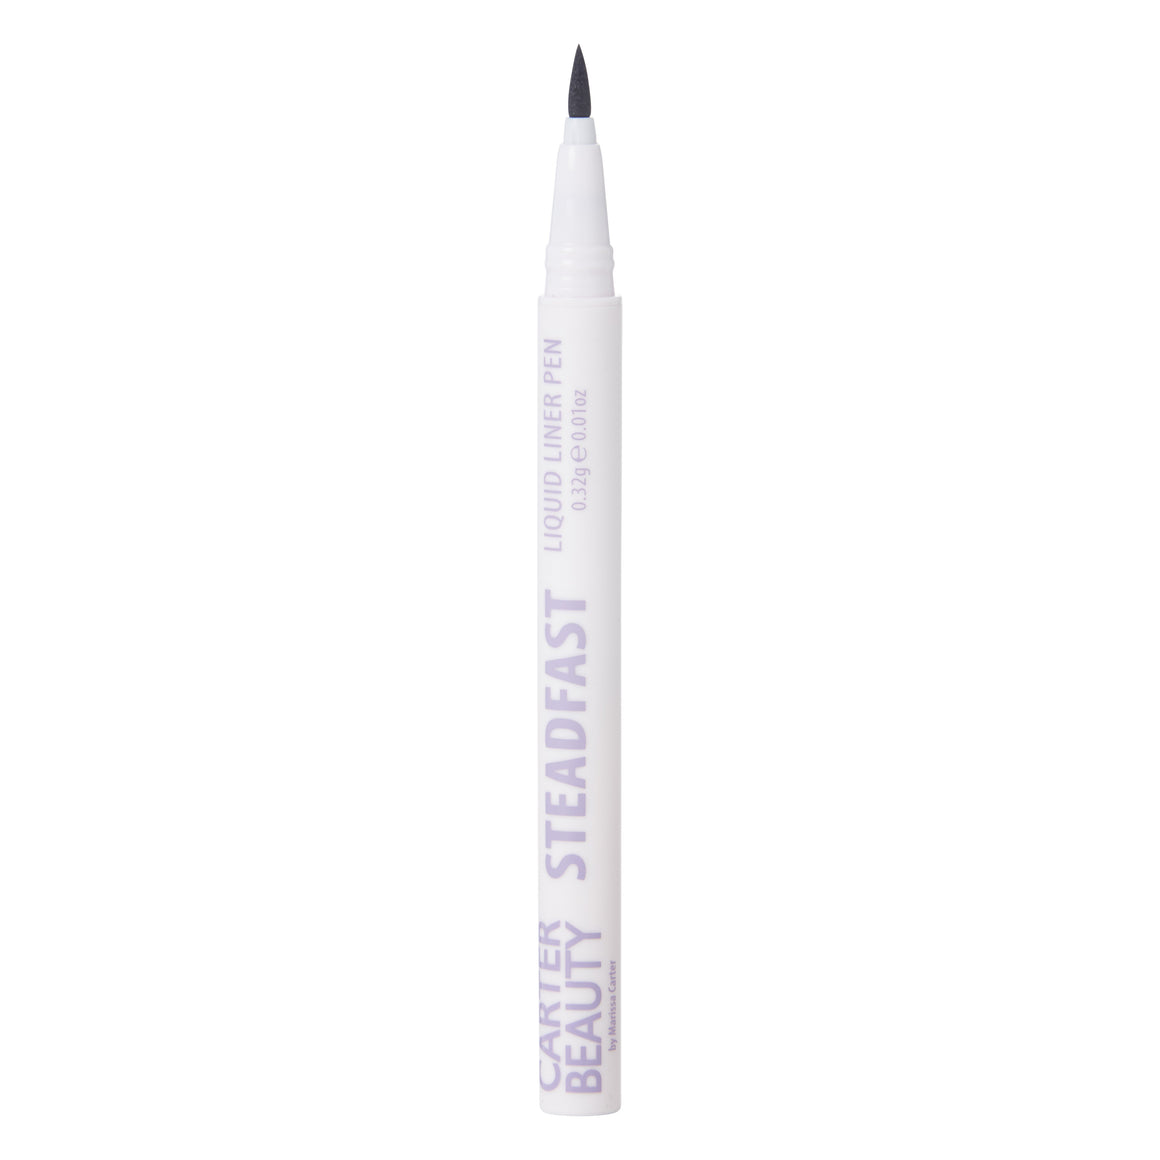 Steadfast Jet Black Liquid Liner Pen